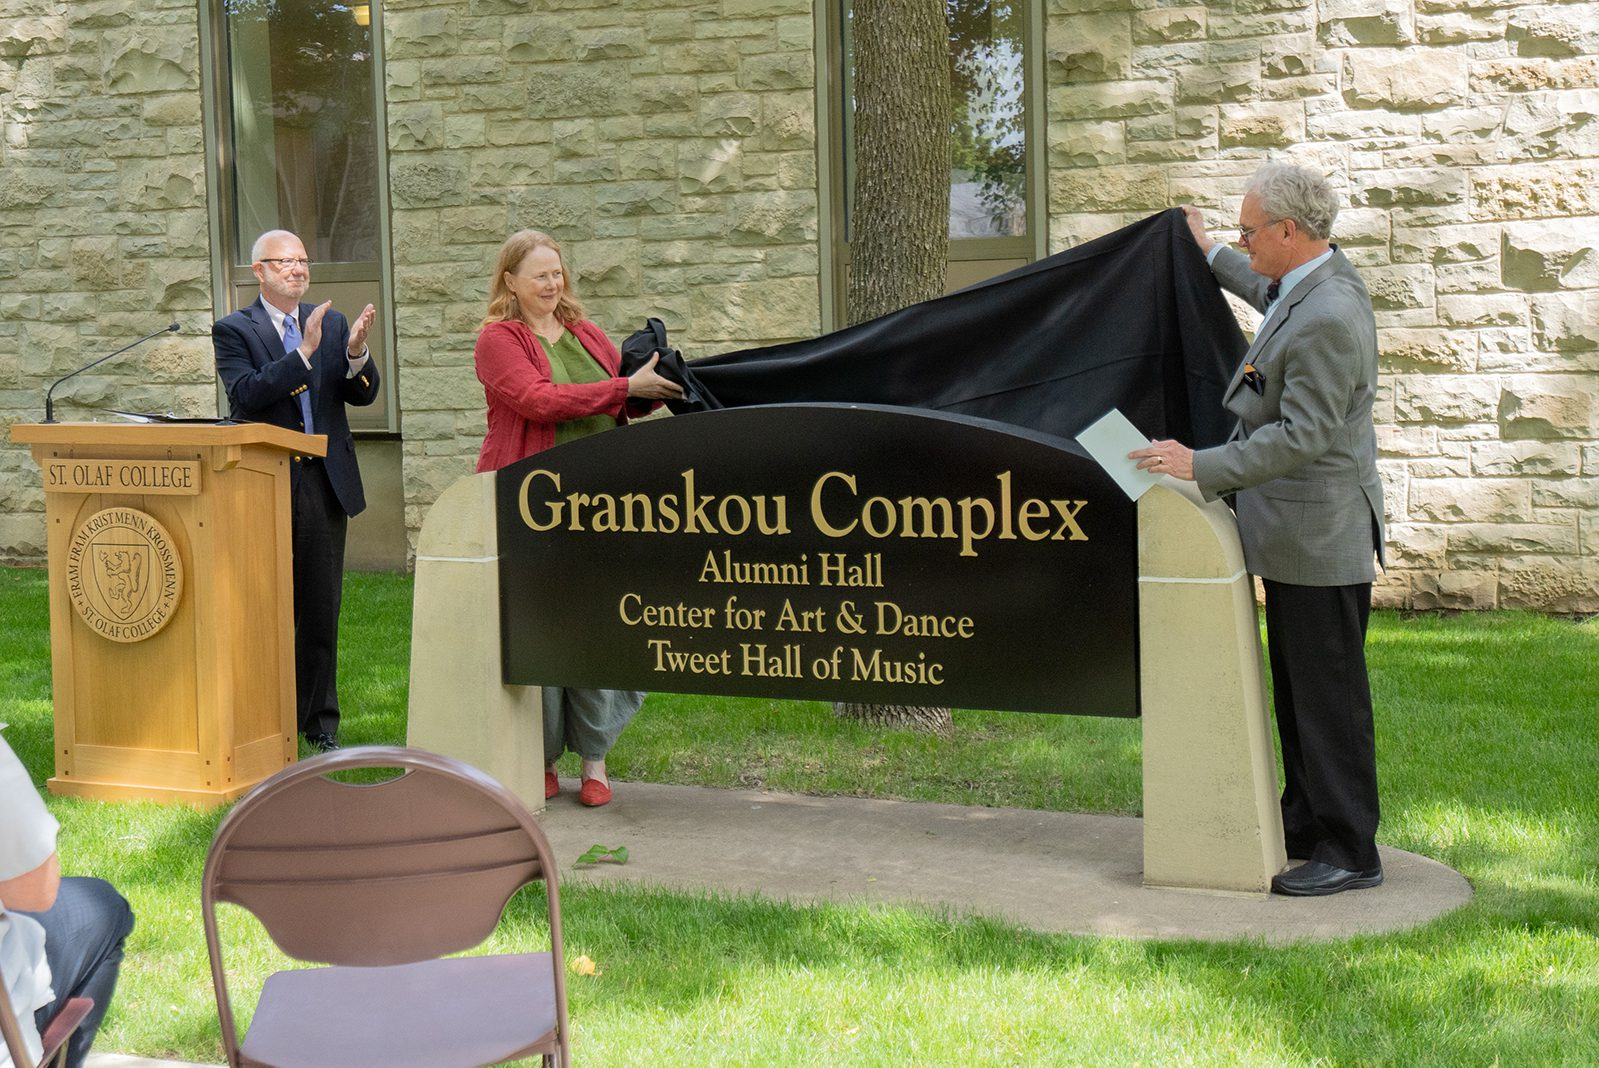 President David R. Anderson '74, Professor of Music and Music Department Chair Kathryn Ananda-Owens, and Associate Provost and Professor of Music and King Olav V Chair in Scandinavian-American Studies Dan Dressen unveil the new sign recognizing Tweet Hall of Music as part of the Granskou Complex.